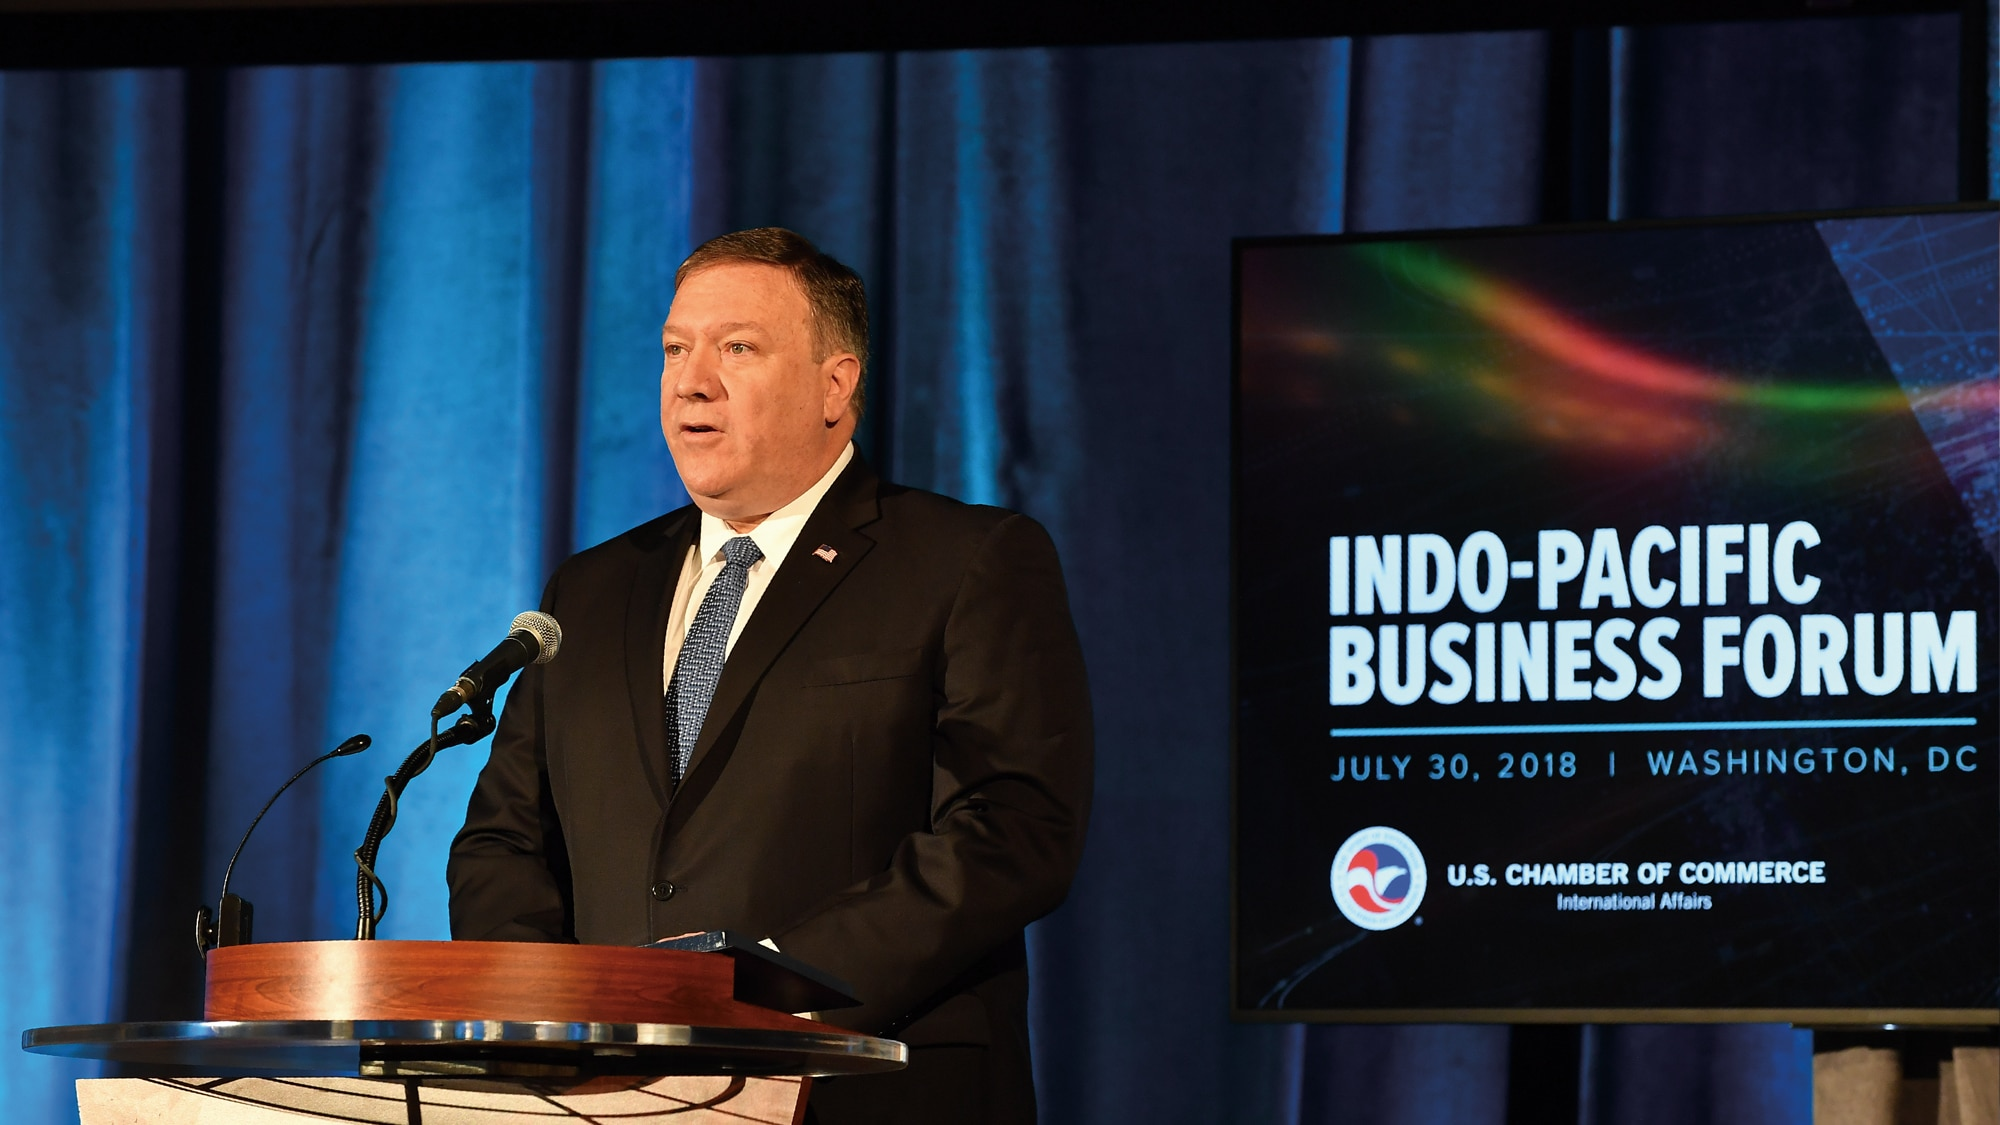 Photo showing Secretary Pompeo delivering the keynote address at the Inaugural Indo-Pacific Business Forum at the U.S. Chamber of Commerce in Washington, D.C., July 30, 2018. [Department of State]